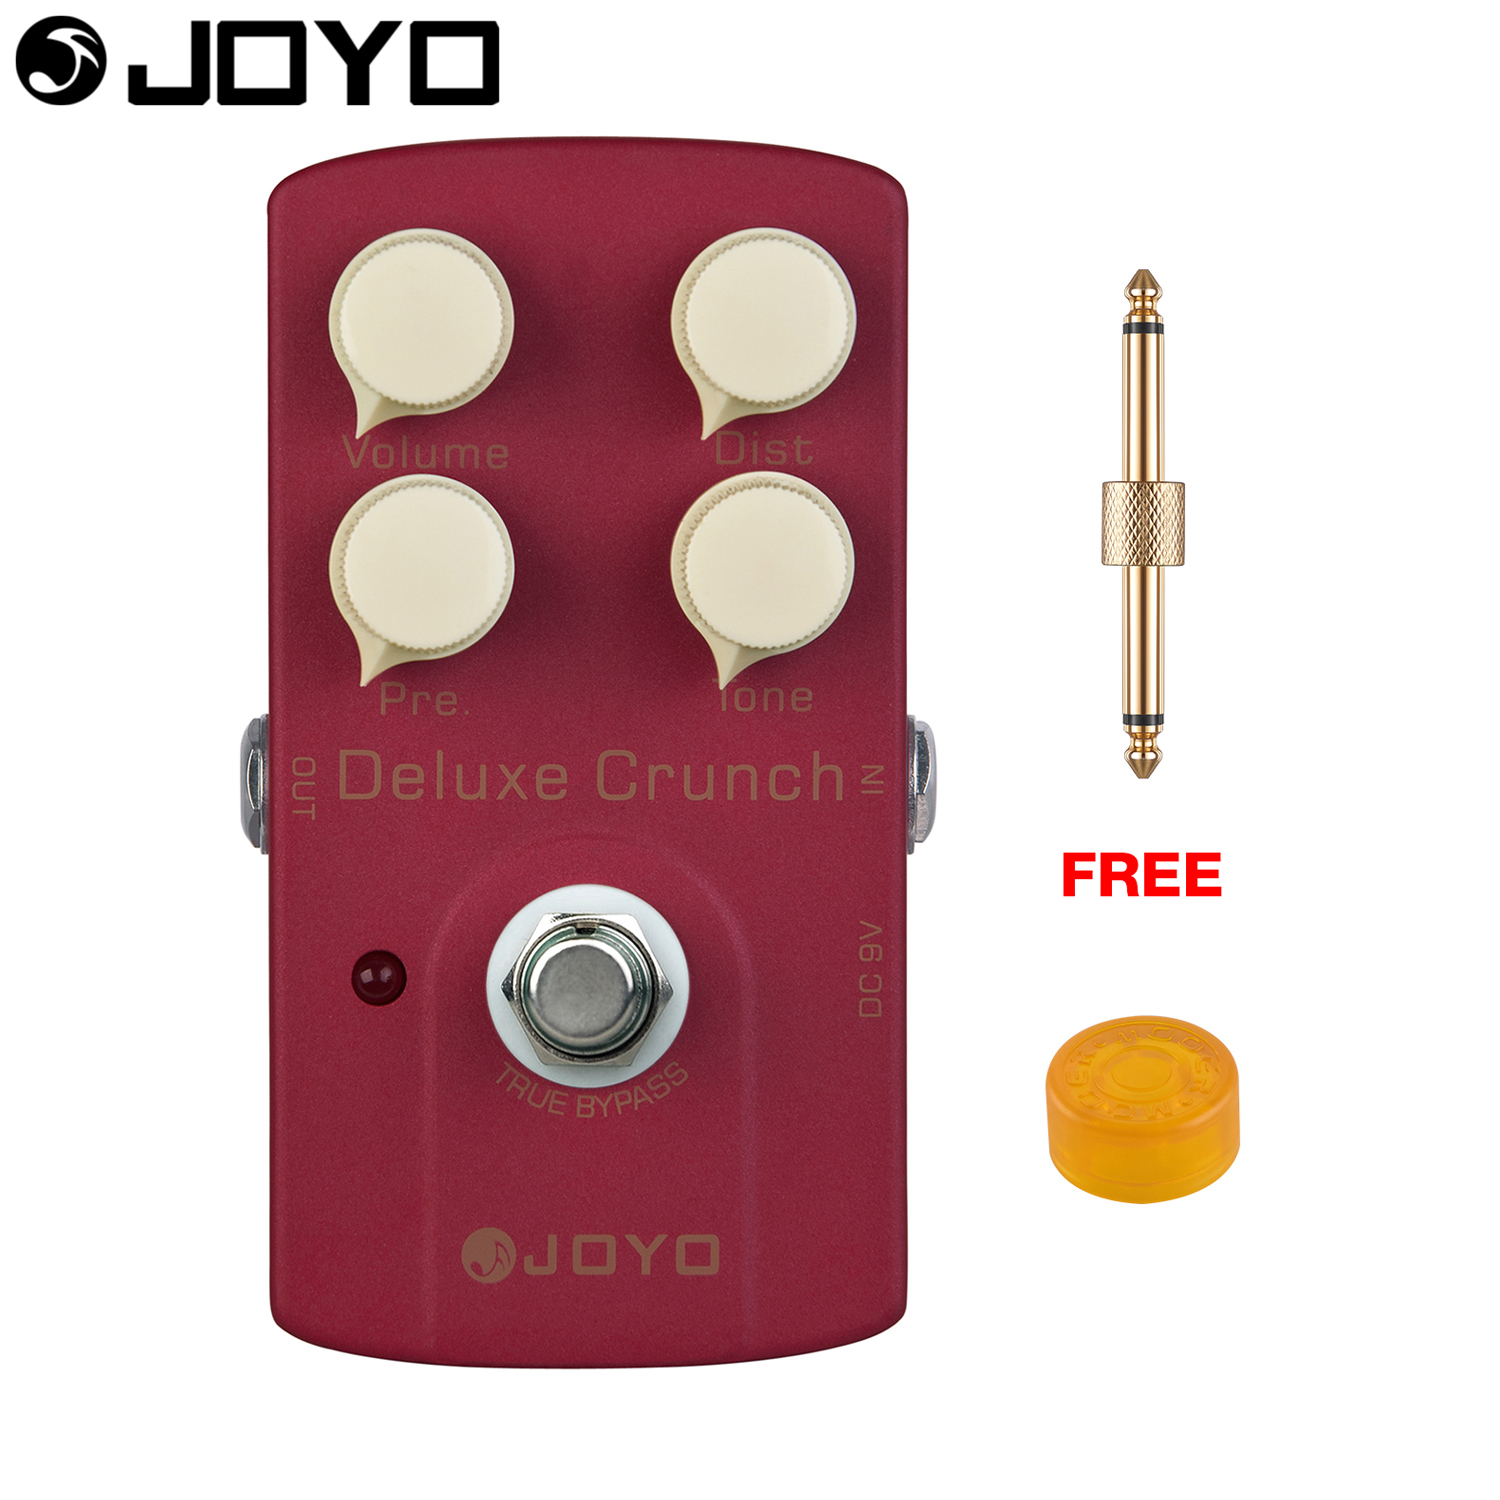 JOYO Deluxe Crunch Distortion Electric Guitar Effect Pedal True Bypass JF-39 with Free Connector and Footswitch Topper joyo jf 39 deluxe crunch overdrive guitar pedal effect true bypass red